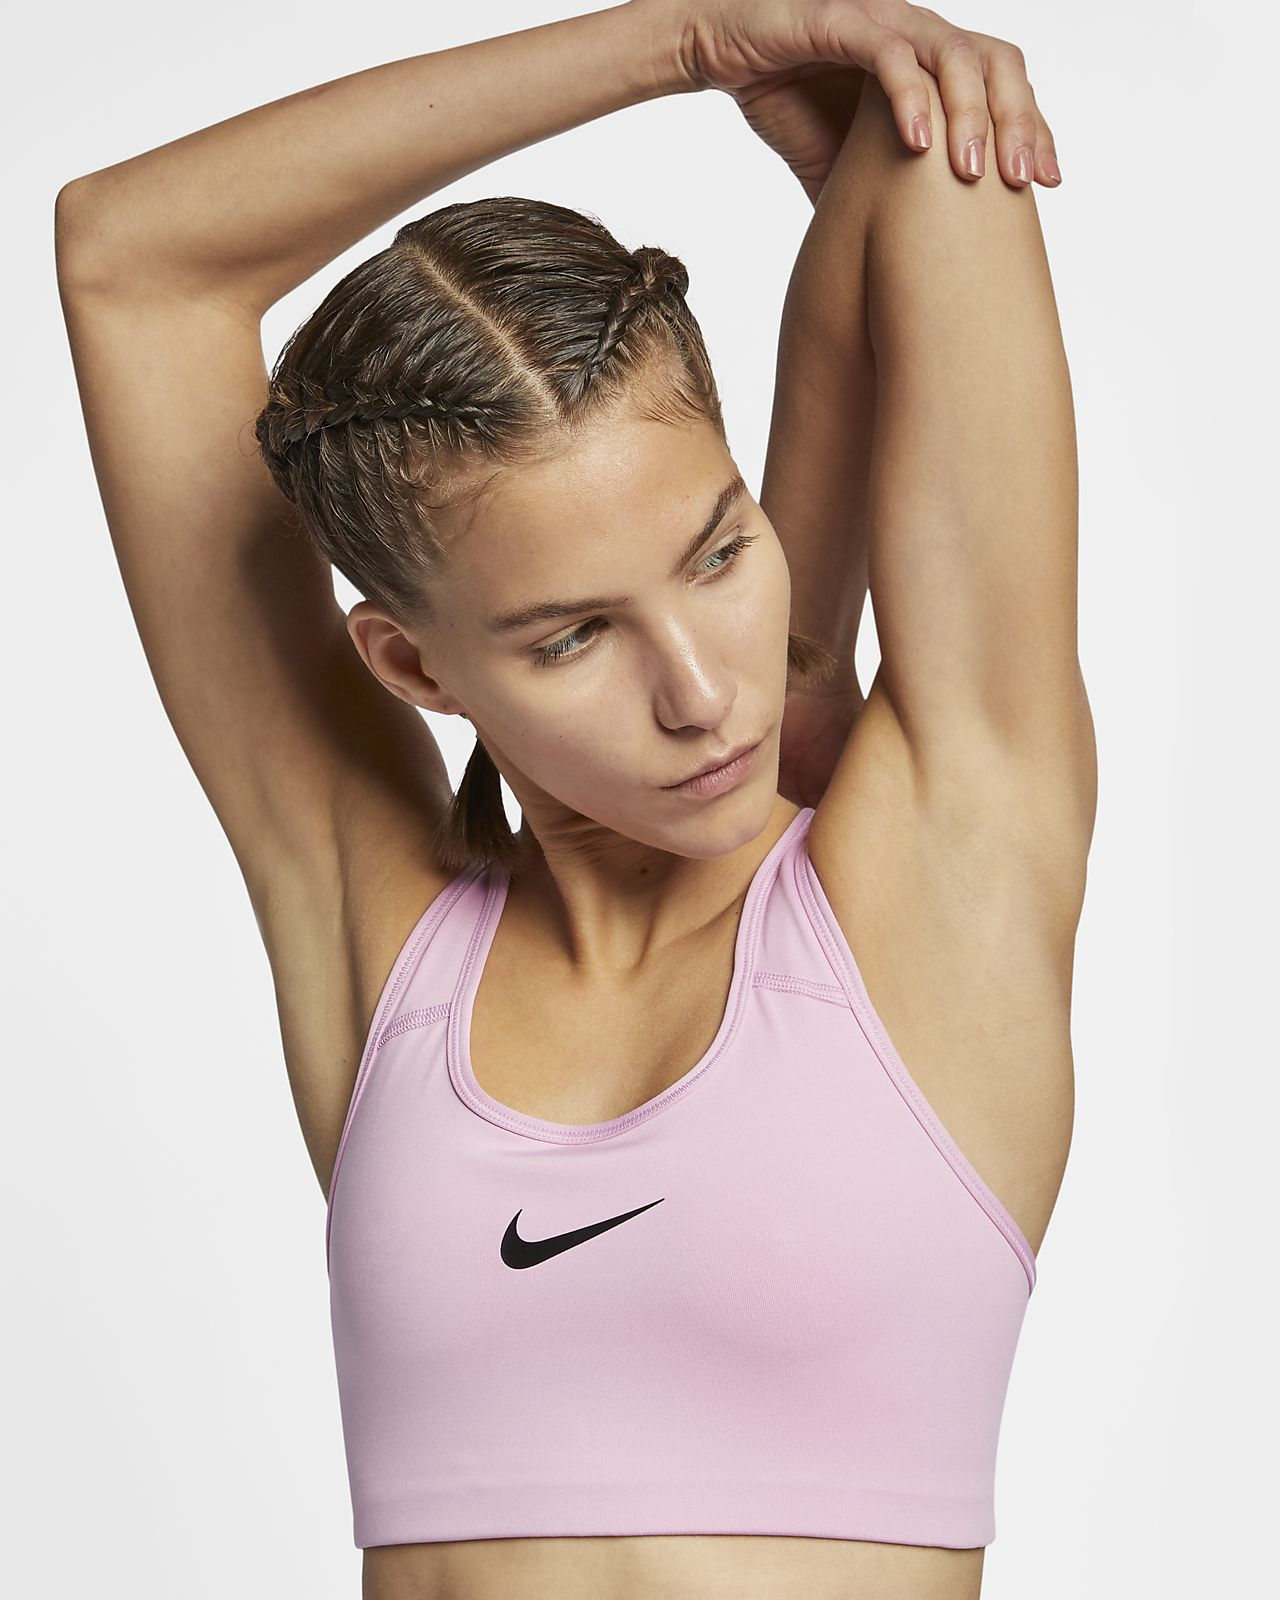 e7e51c44ac1dd Nike Women s Swoosh Medium-Support Sports Bra. Nike.com AU